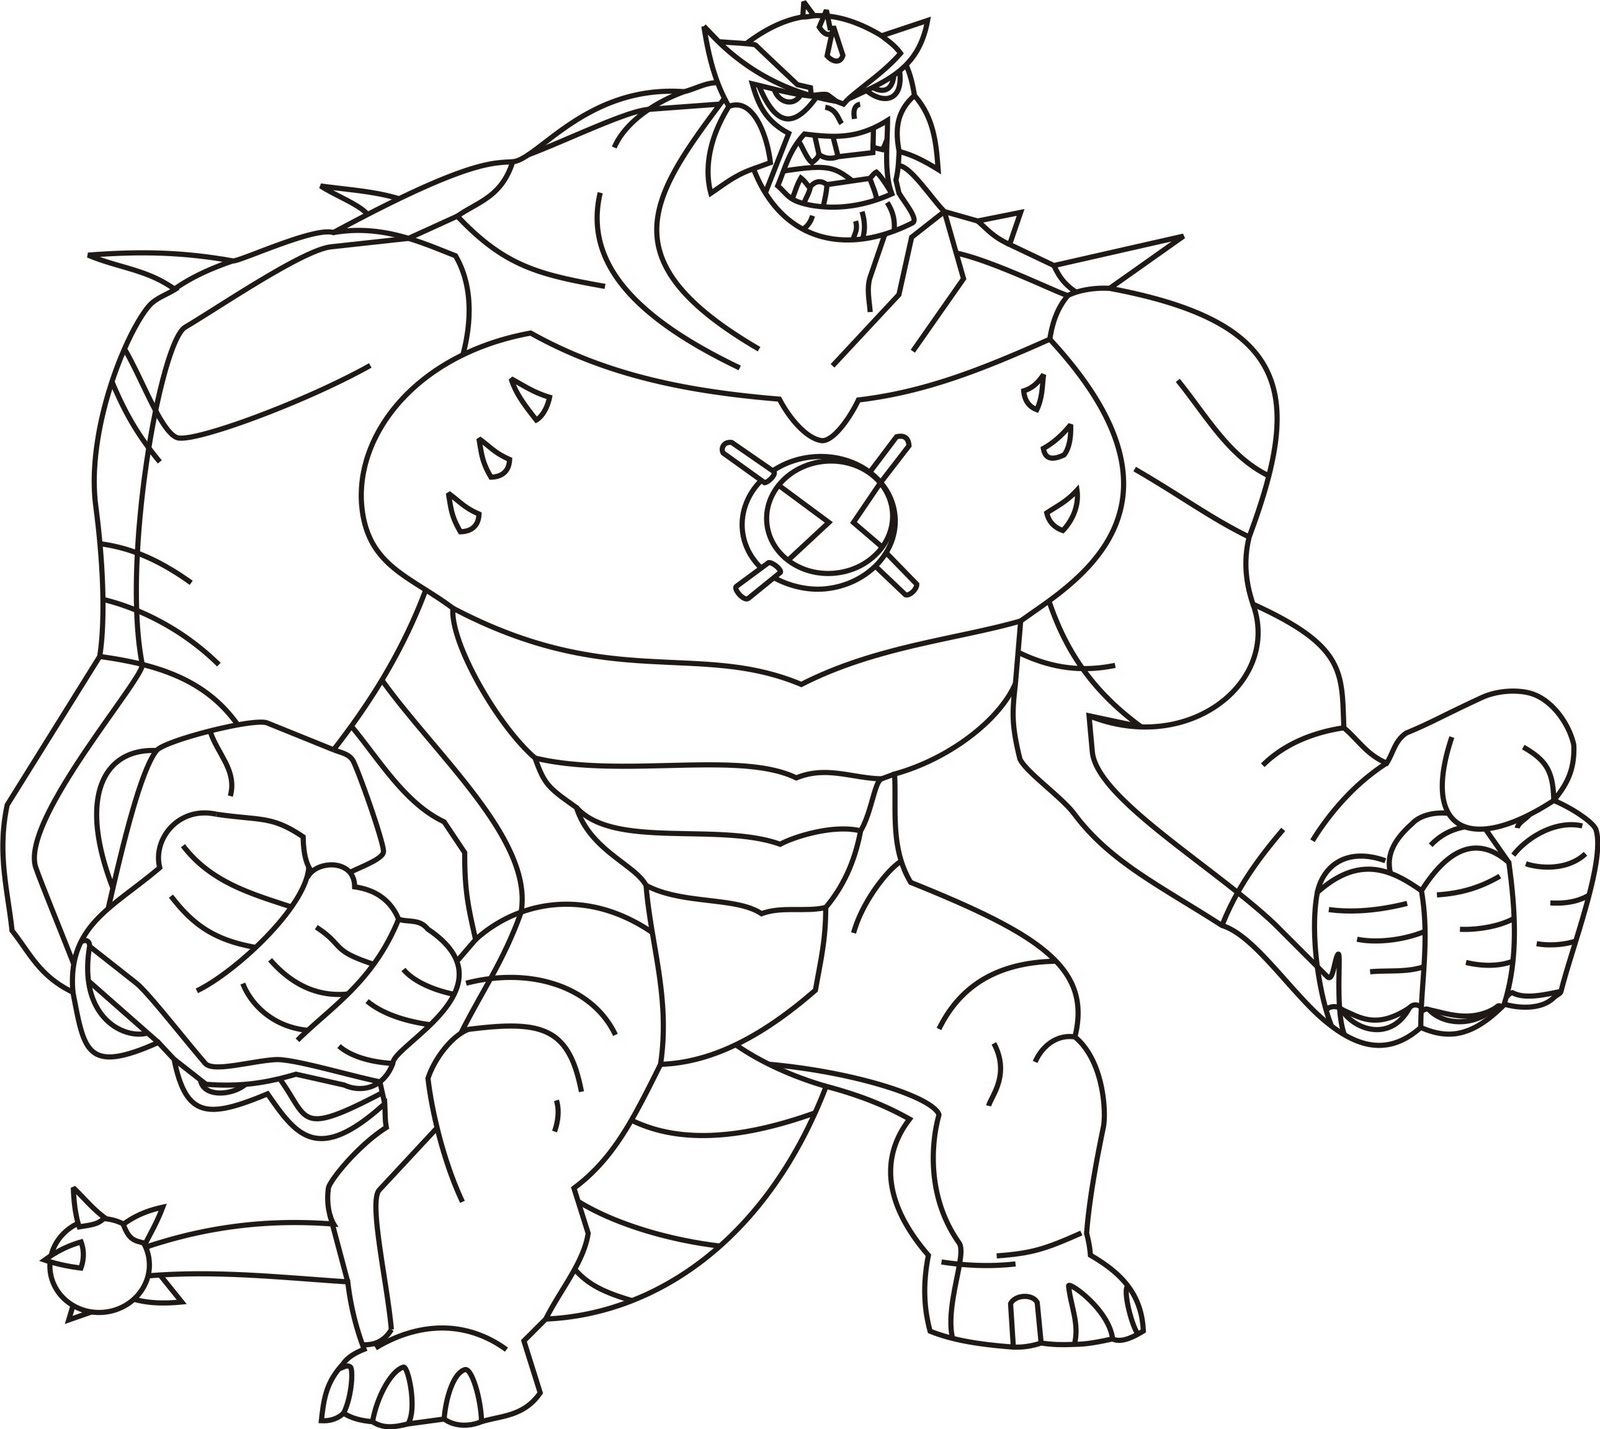 For Ben 10 Aliens Coloring Coloring Pages